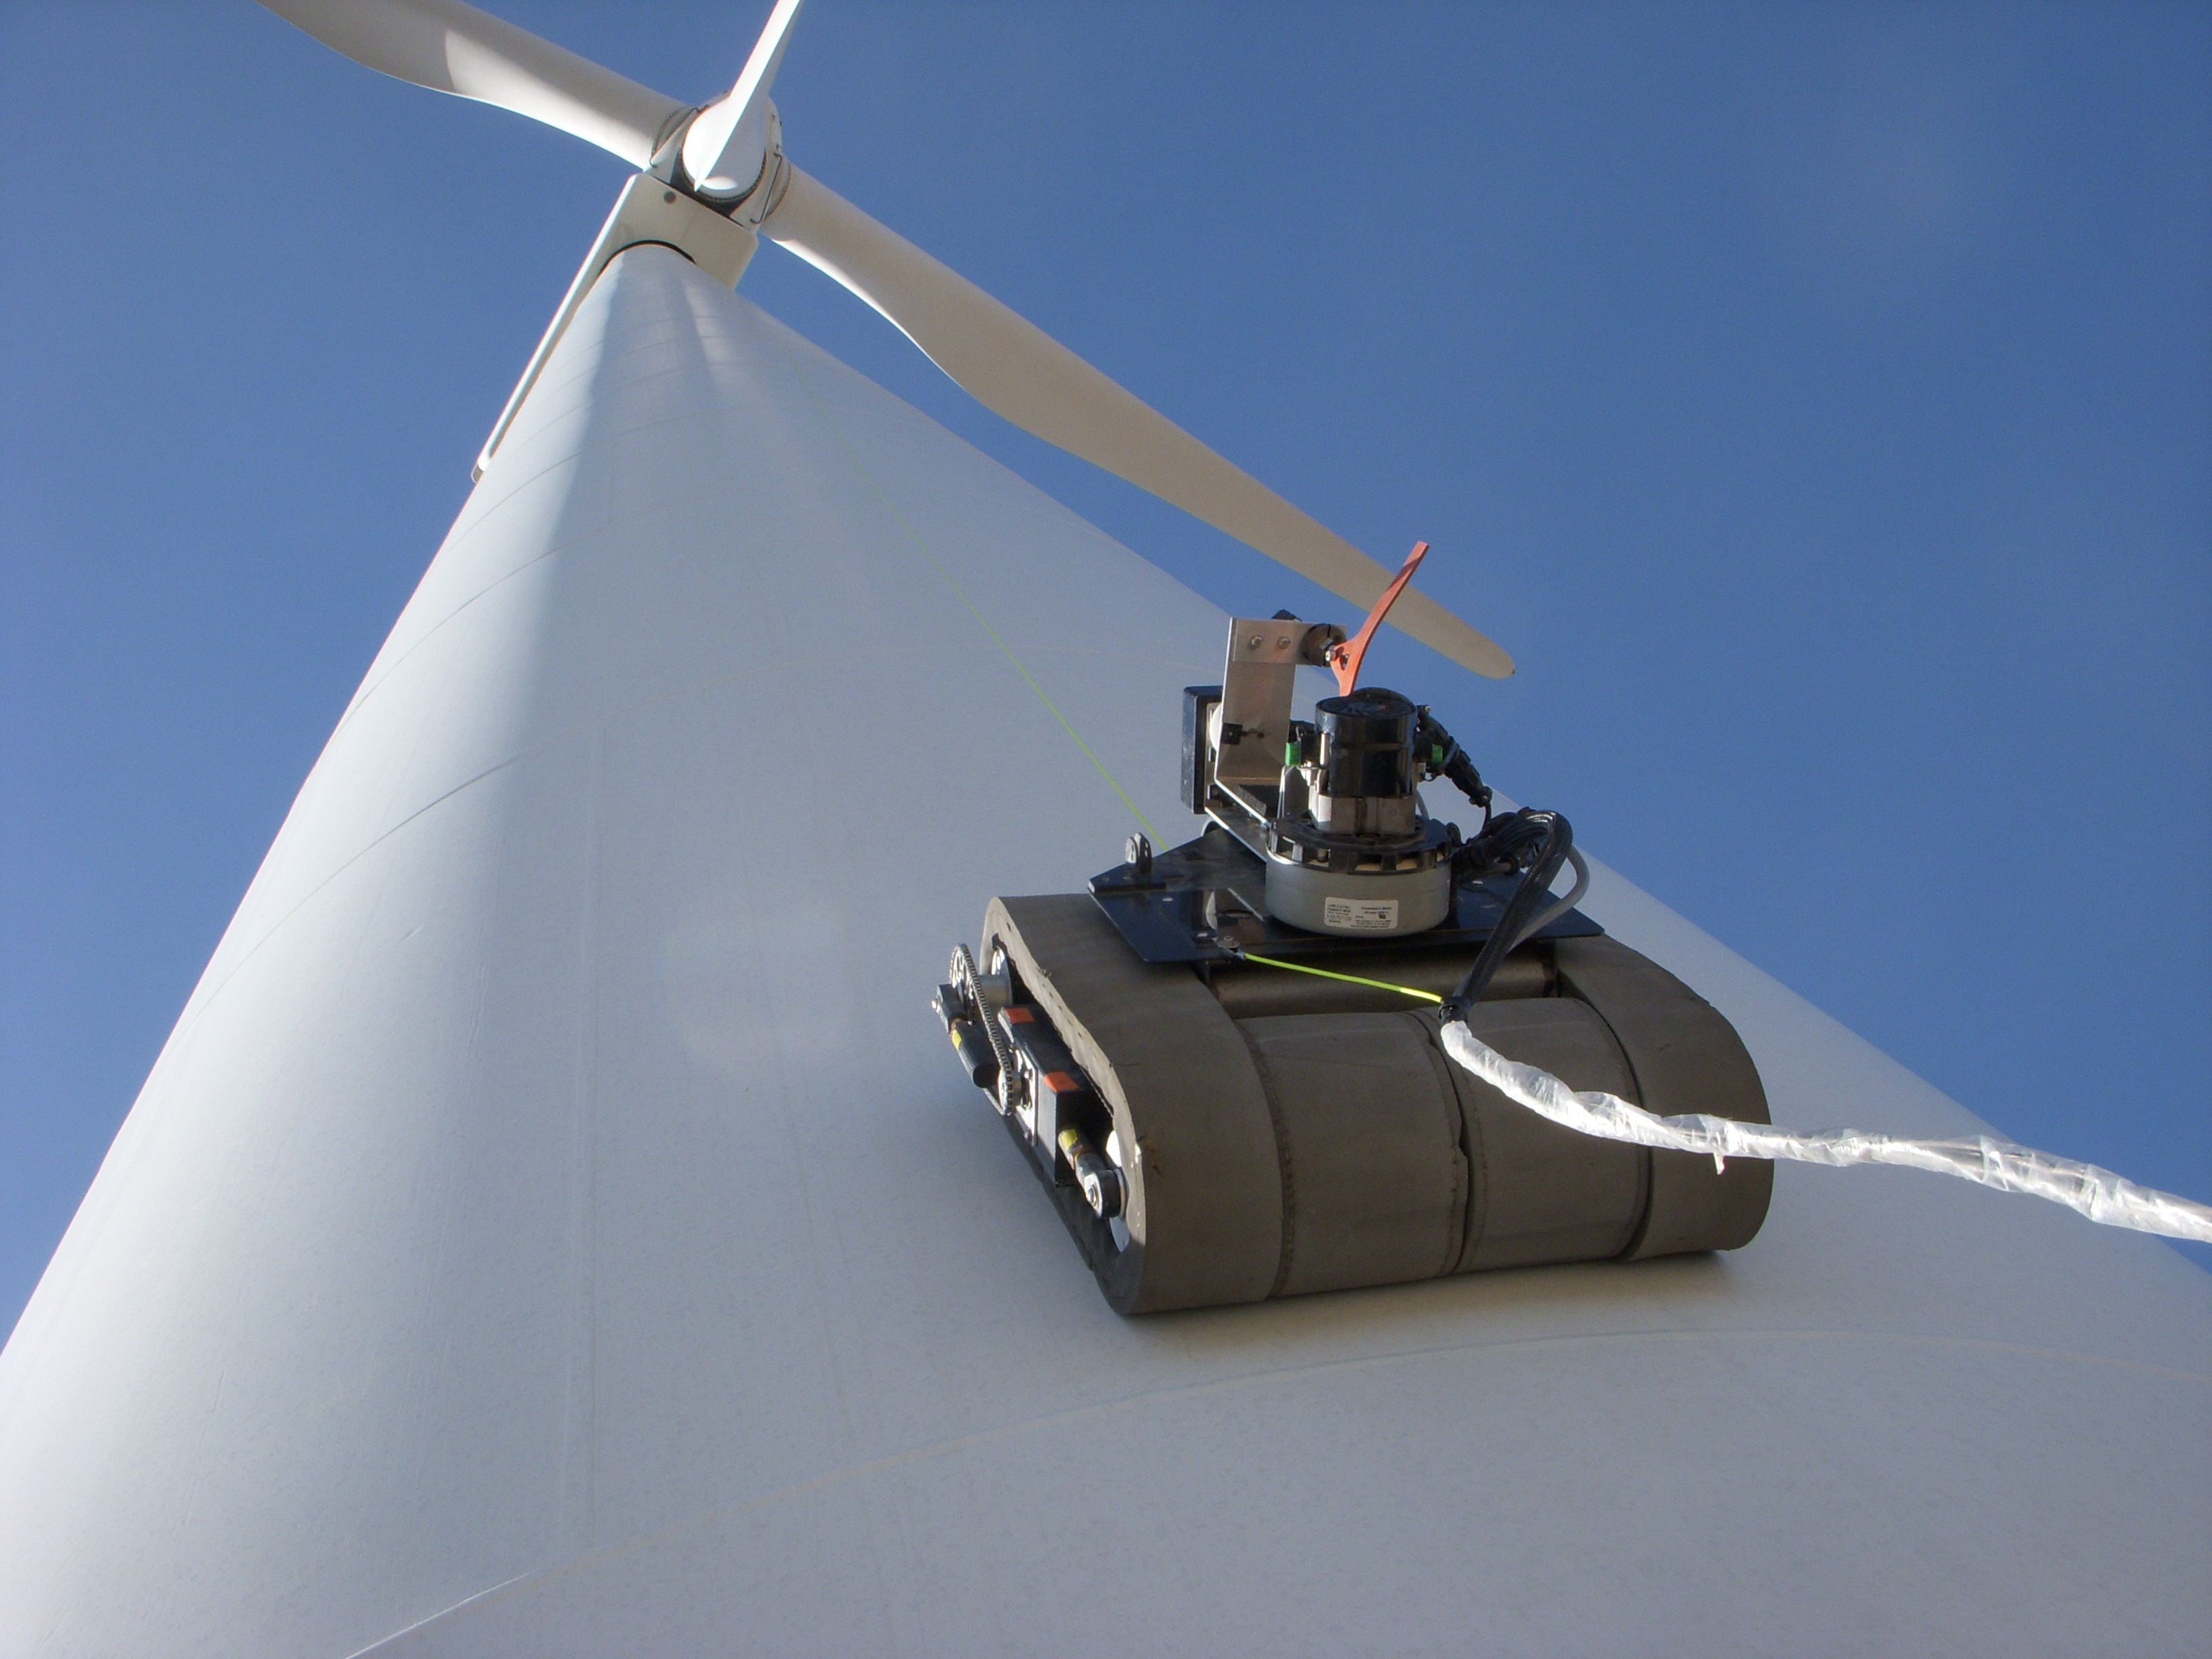 GE Takes Wind Turbine Inspection to New Heights Using M2M Technology